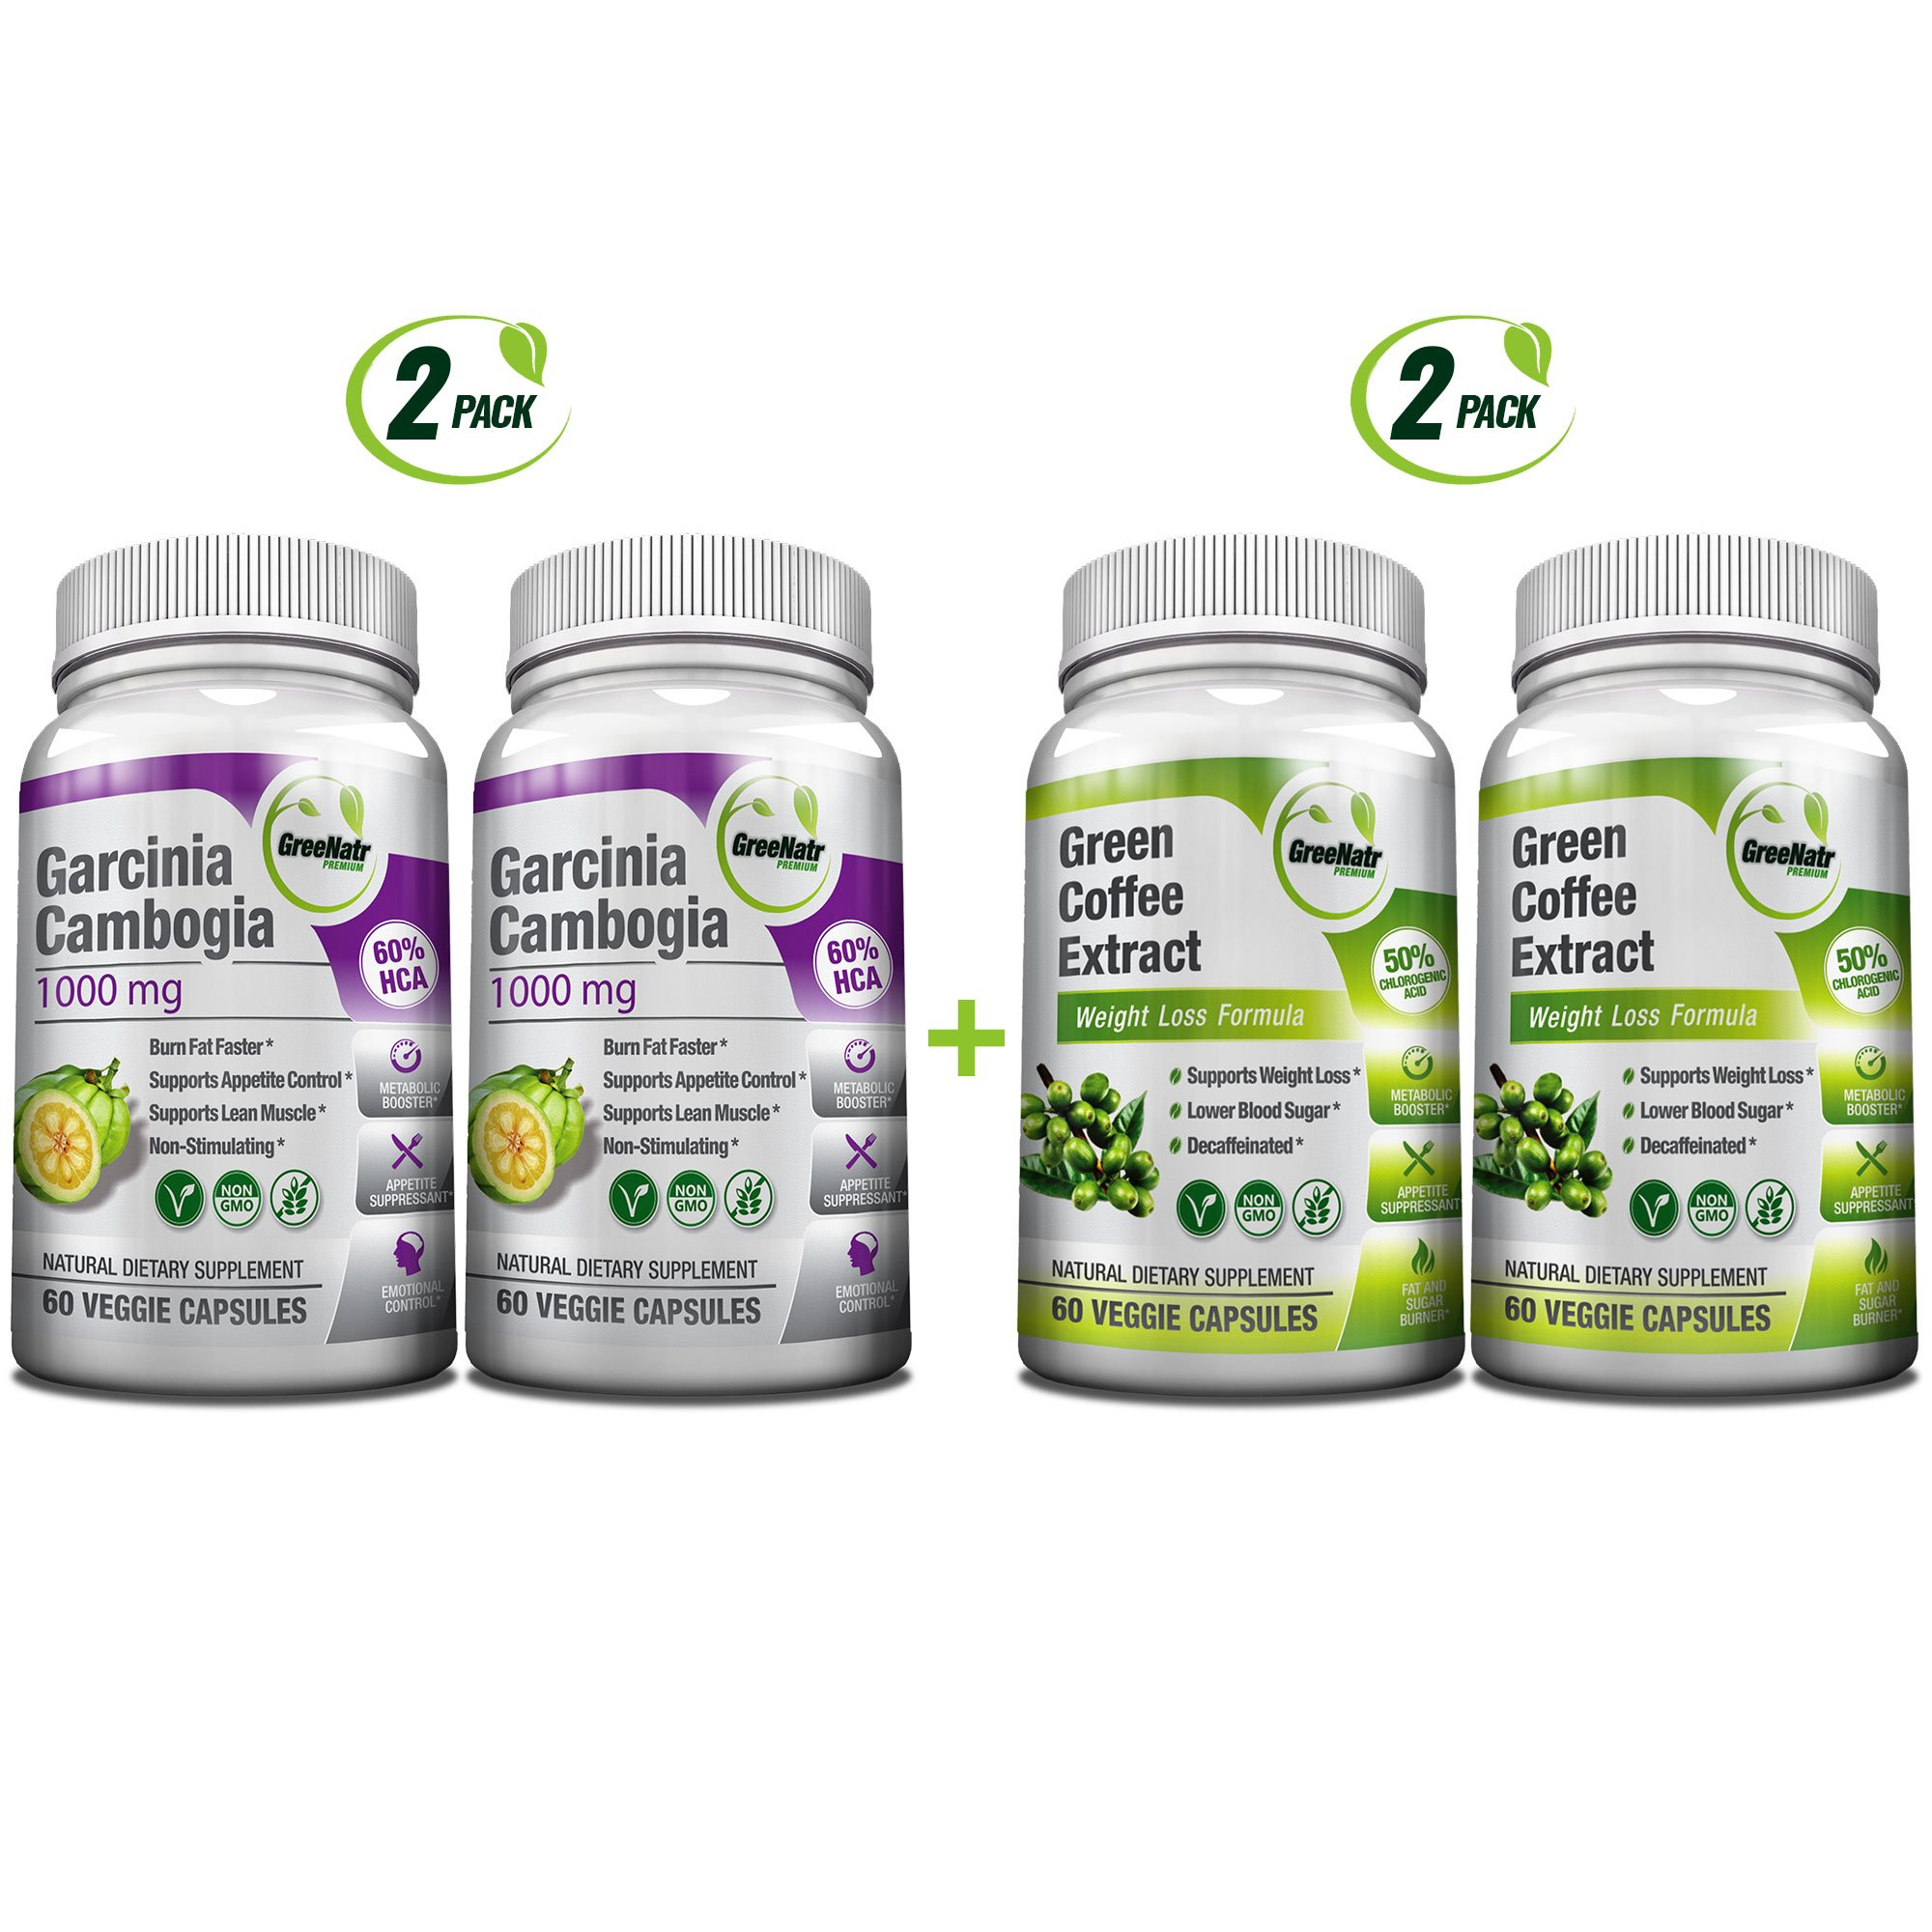 All-in-One Weight Diet Loss Pills & Appetite Suppressant Bundle w/Pure Green Coffee Bean Extract + Garcinia Cambogia Extract | Blocks Fat, Sugar, Carbs - 240 Veggie Capsules - Gluten Free & Non GMO by GreeNatr (Image #1)